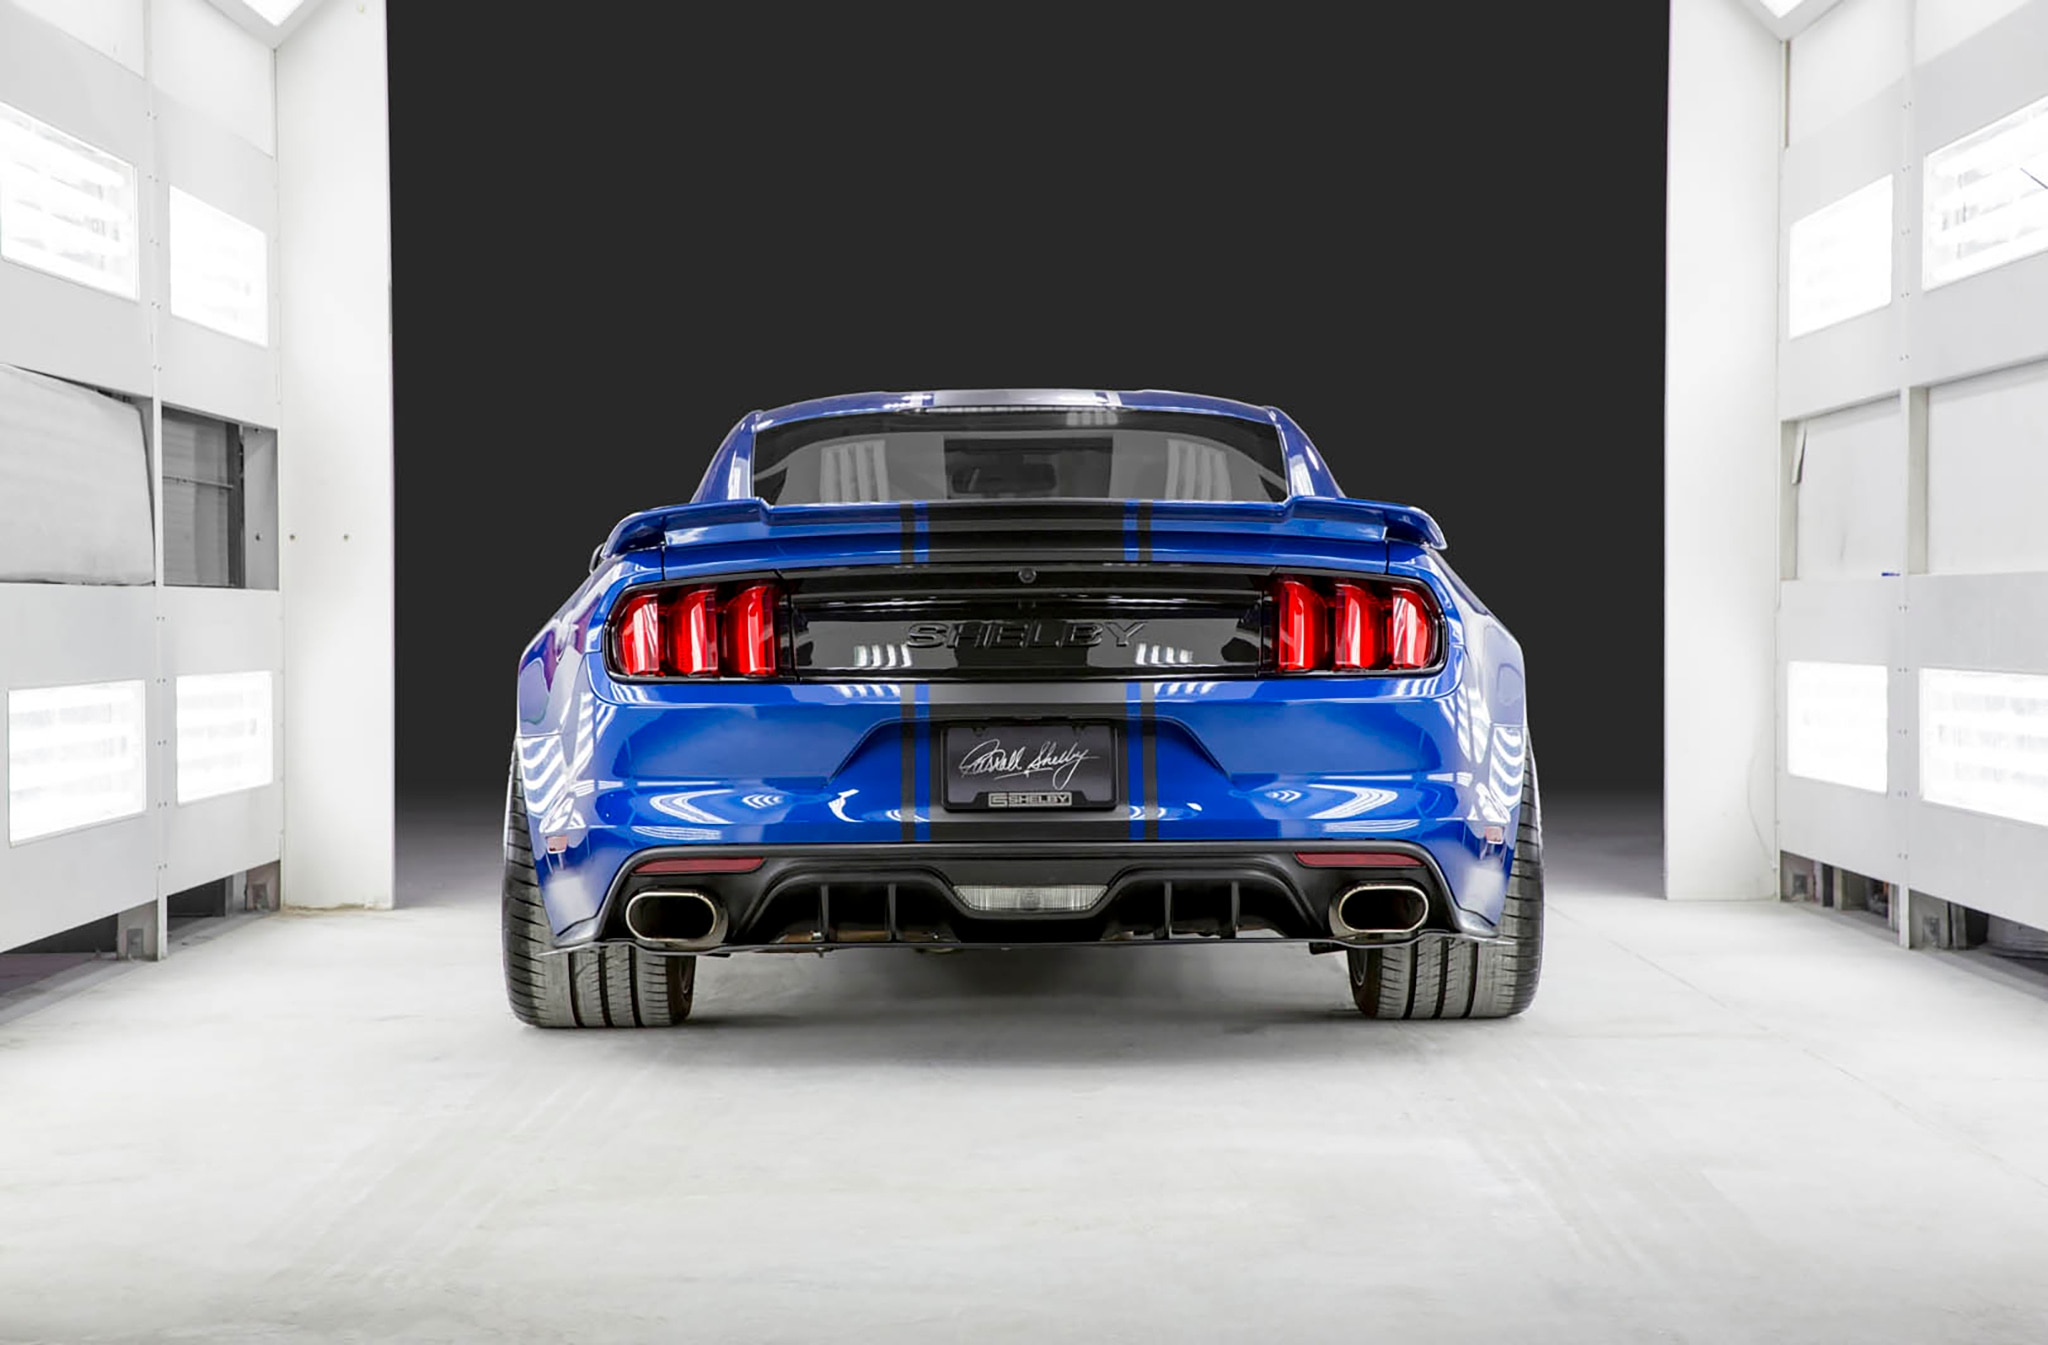 2017 Shelby Super Snake Concept Is A 750 Hp Wide Body Road